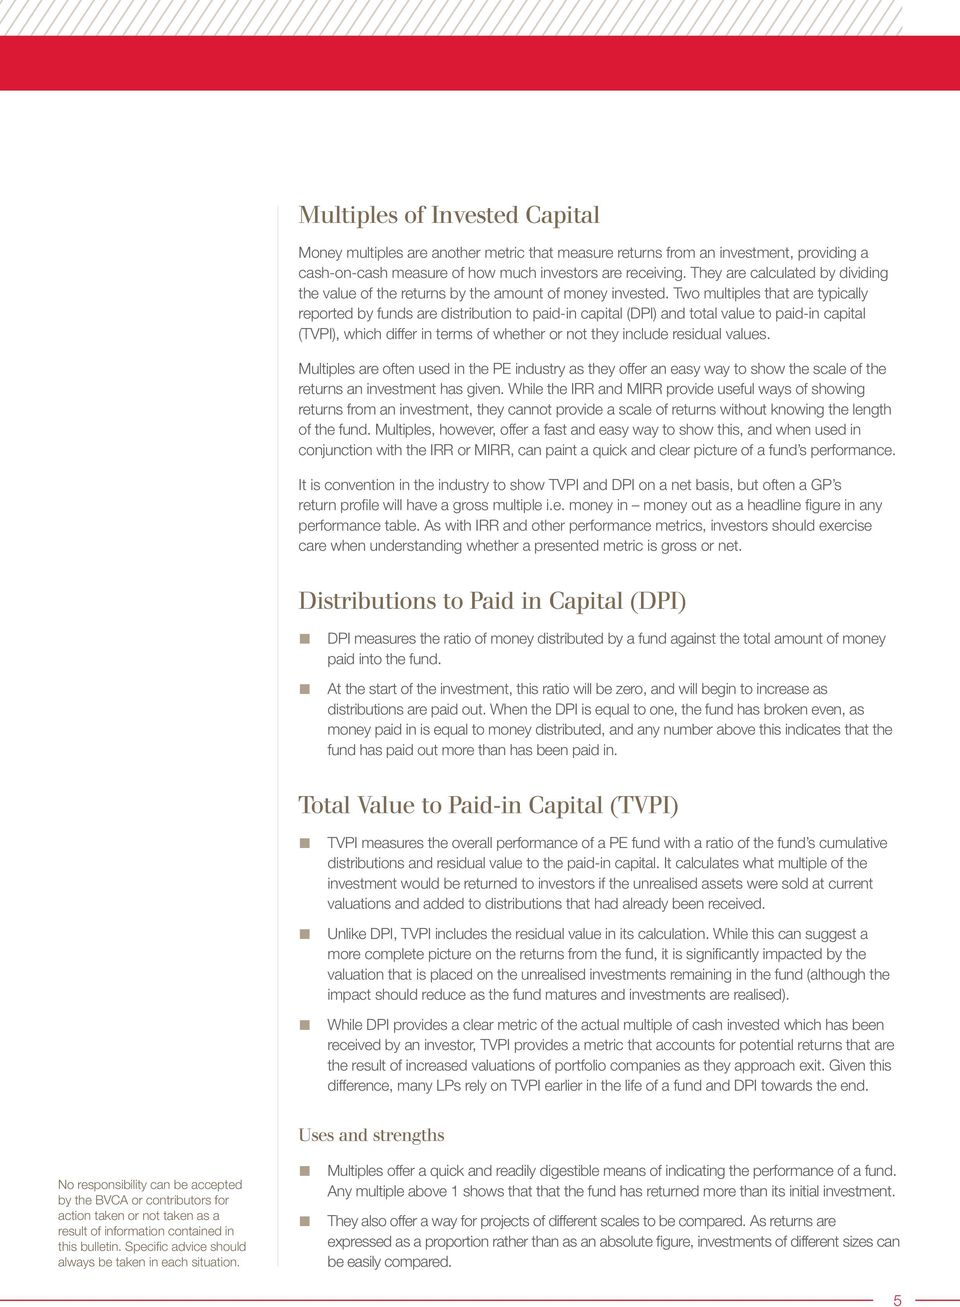 Two multiples that are typically reported by funds are distribution to paid-in capital (DPI) and total value to paid-in capital (TVPI), which differ in terms of whether or not they include residual